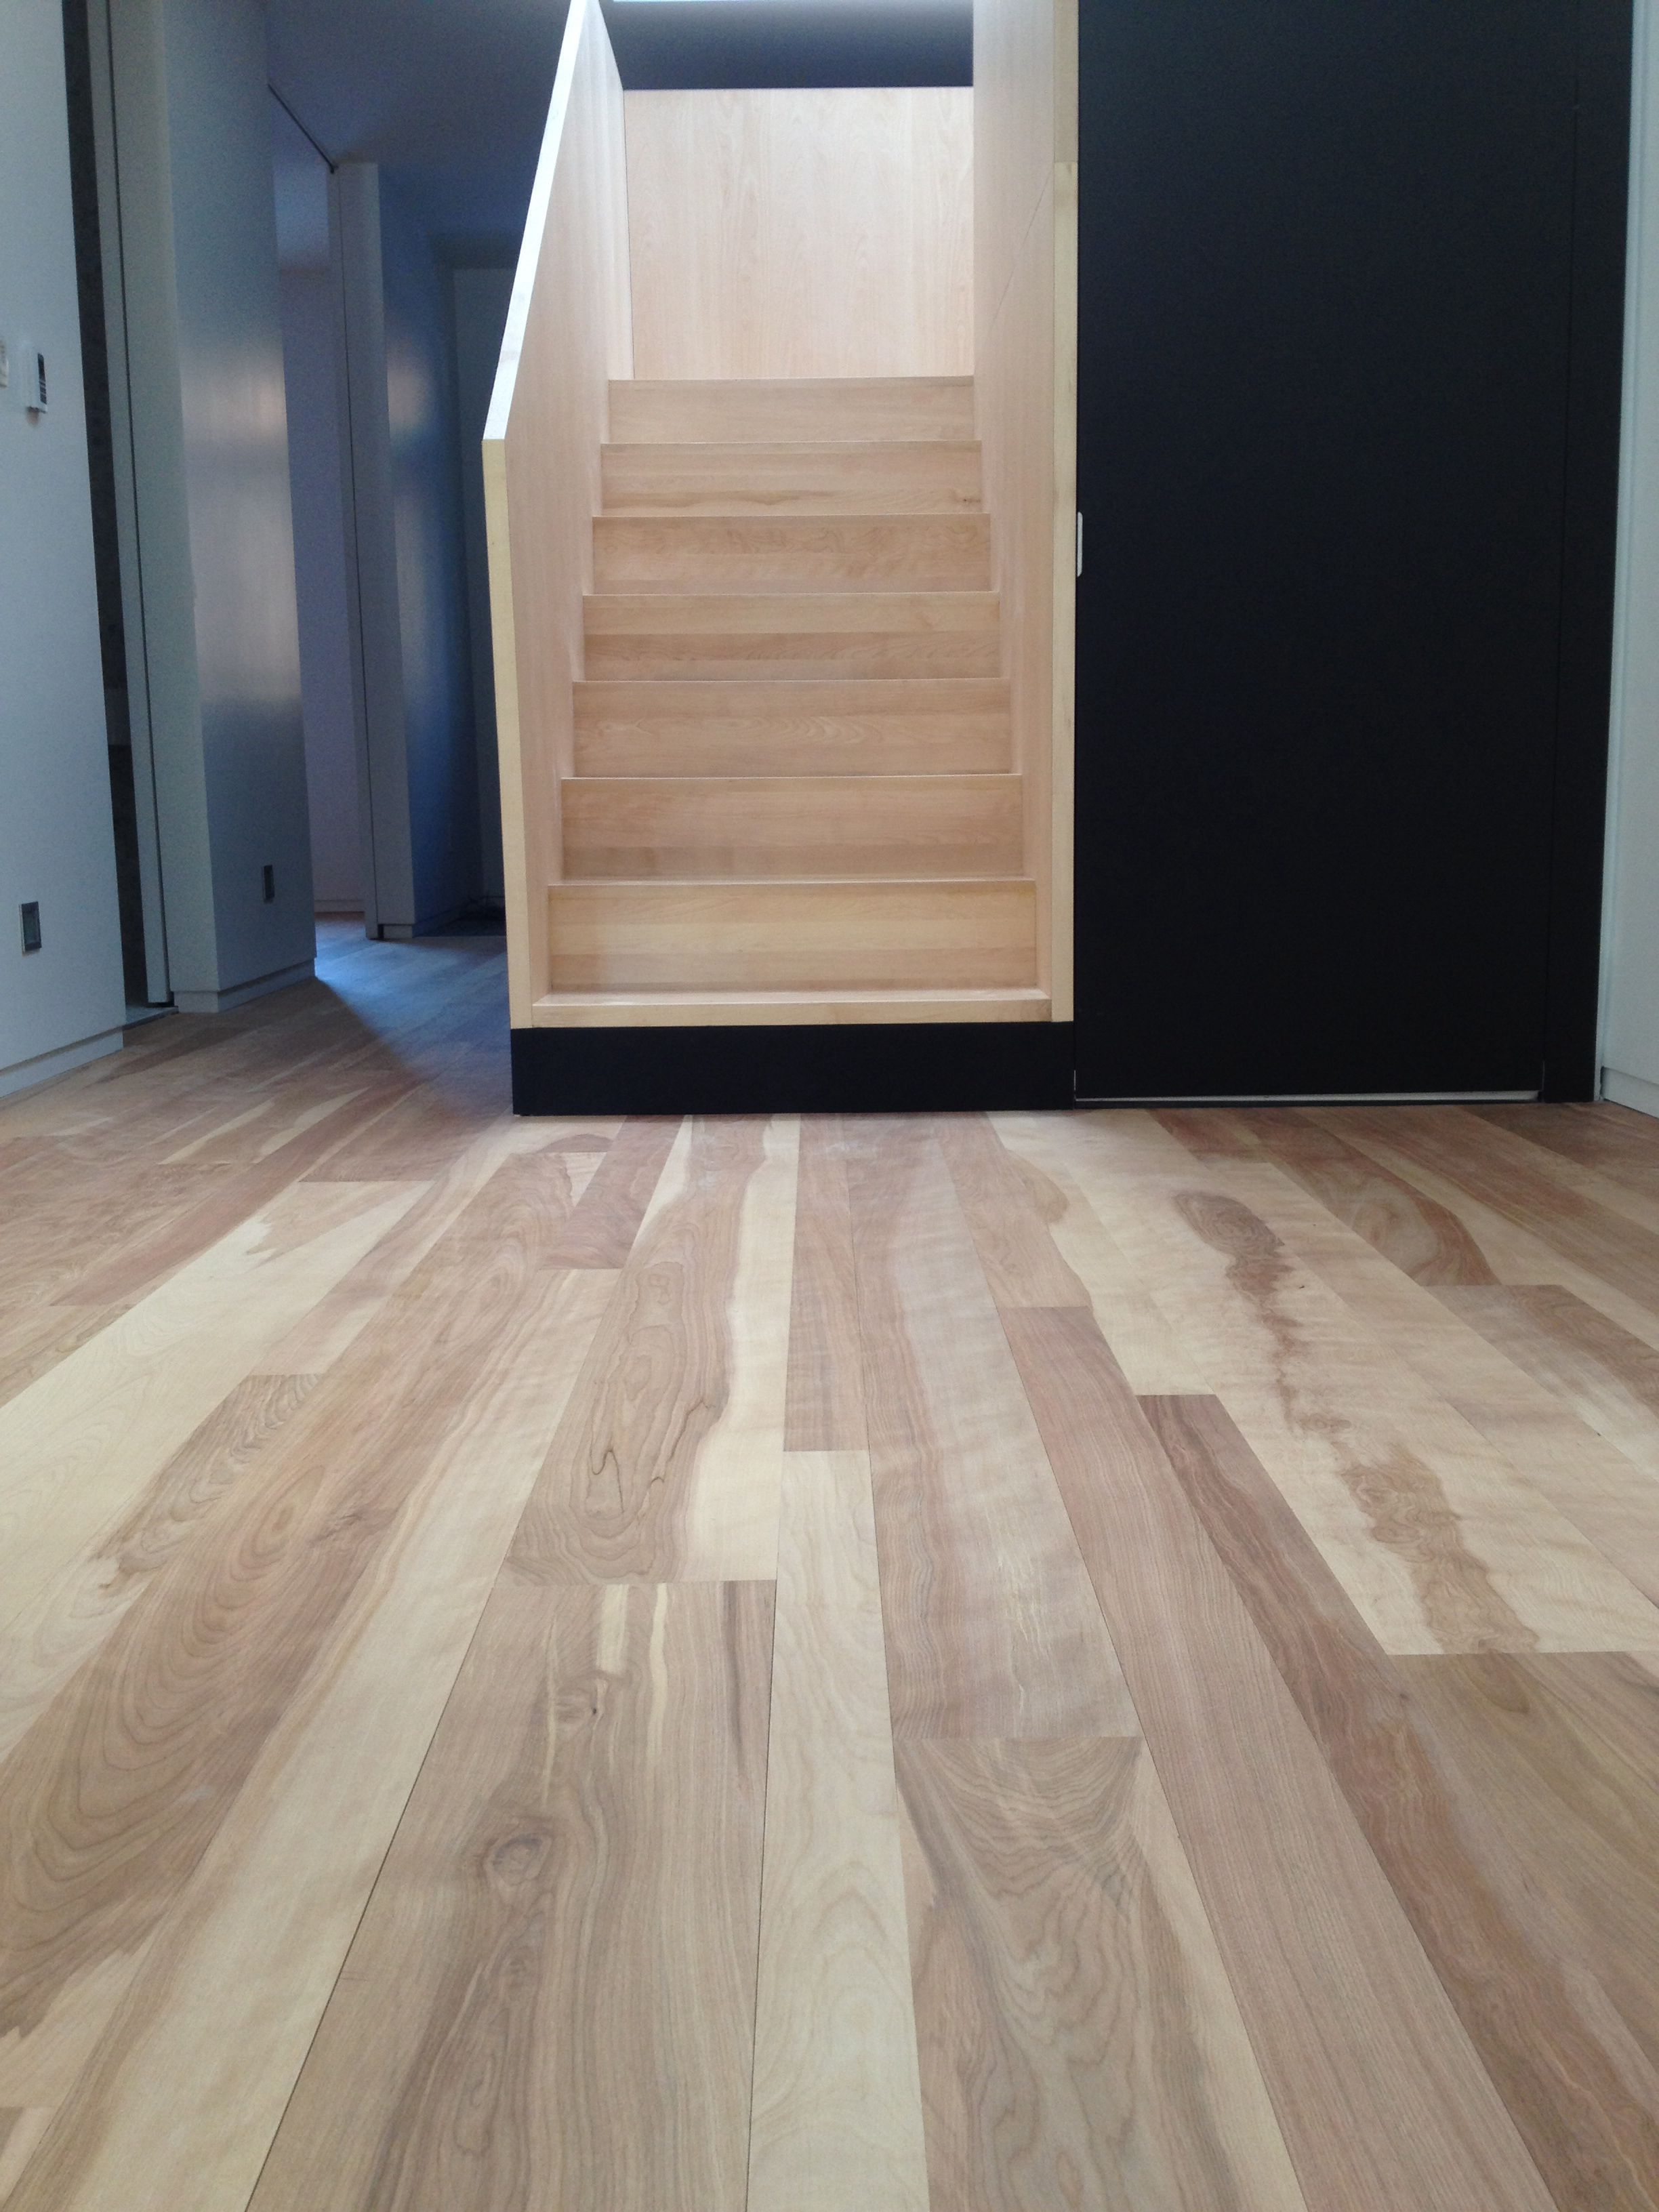 Red Oak Hardwood Floors Stained With Bona Antique Brown Stain Finished With Bona Mega One Waterbor Hardwood Floor Stain Colors Red Oak Floors Wood Floor Colors